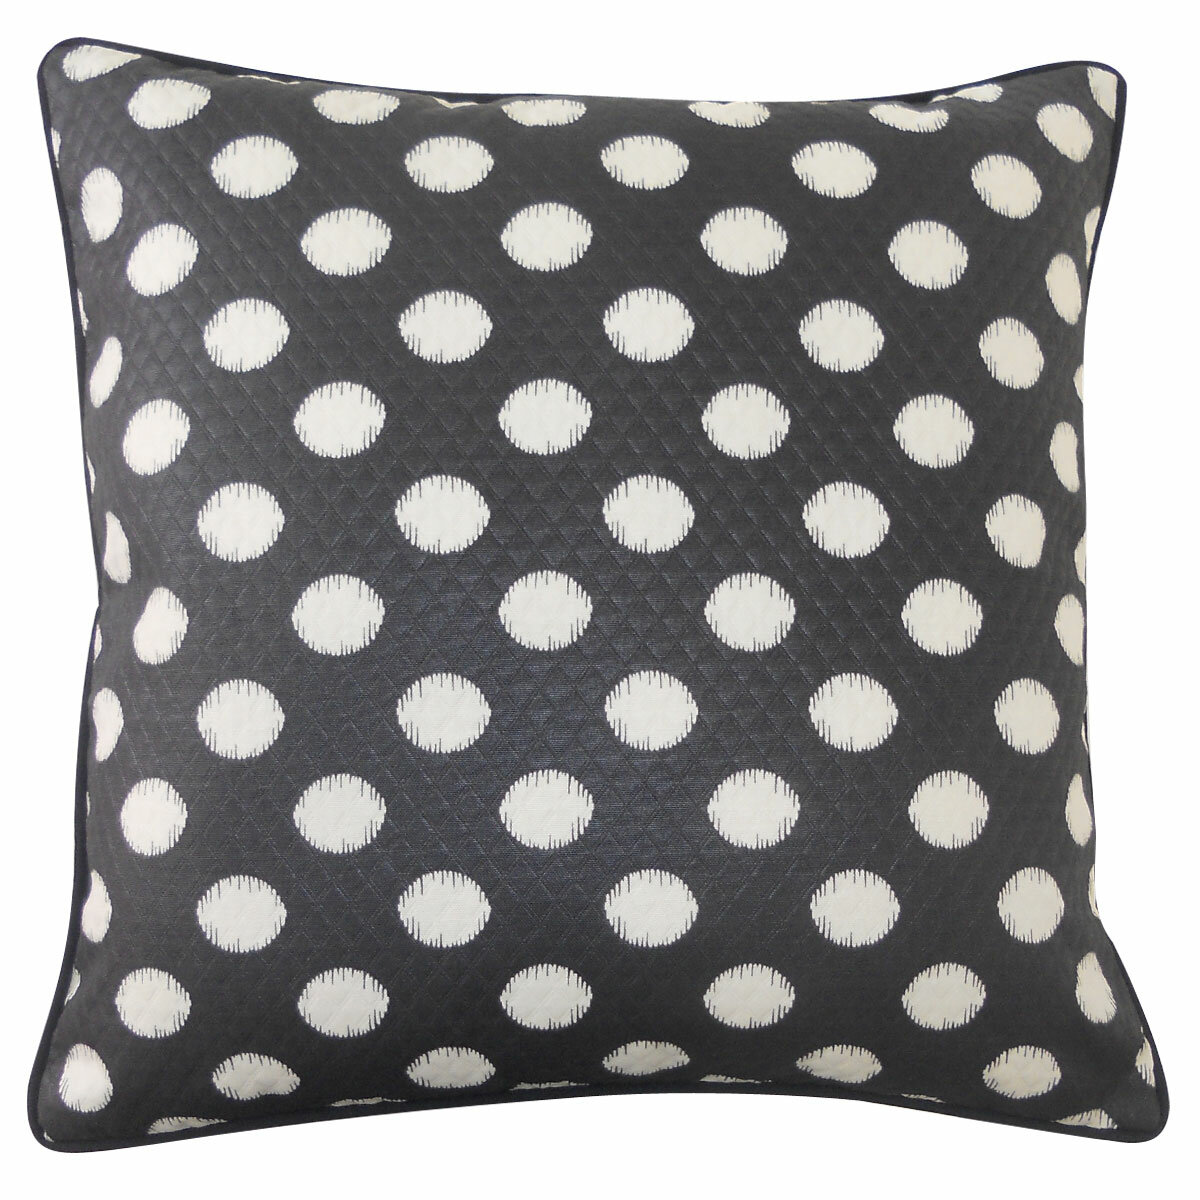 Jiti Spot Outdoor Throw Pillow Wayfair